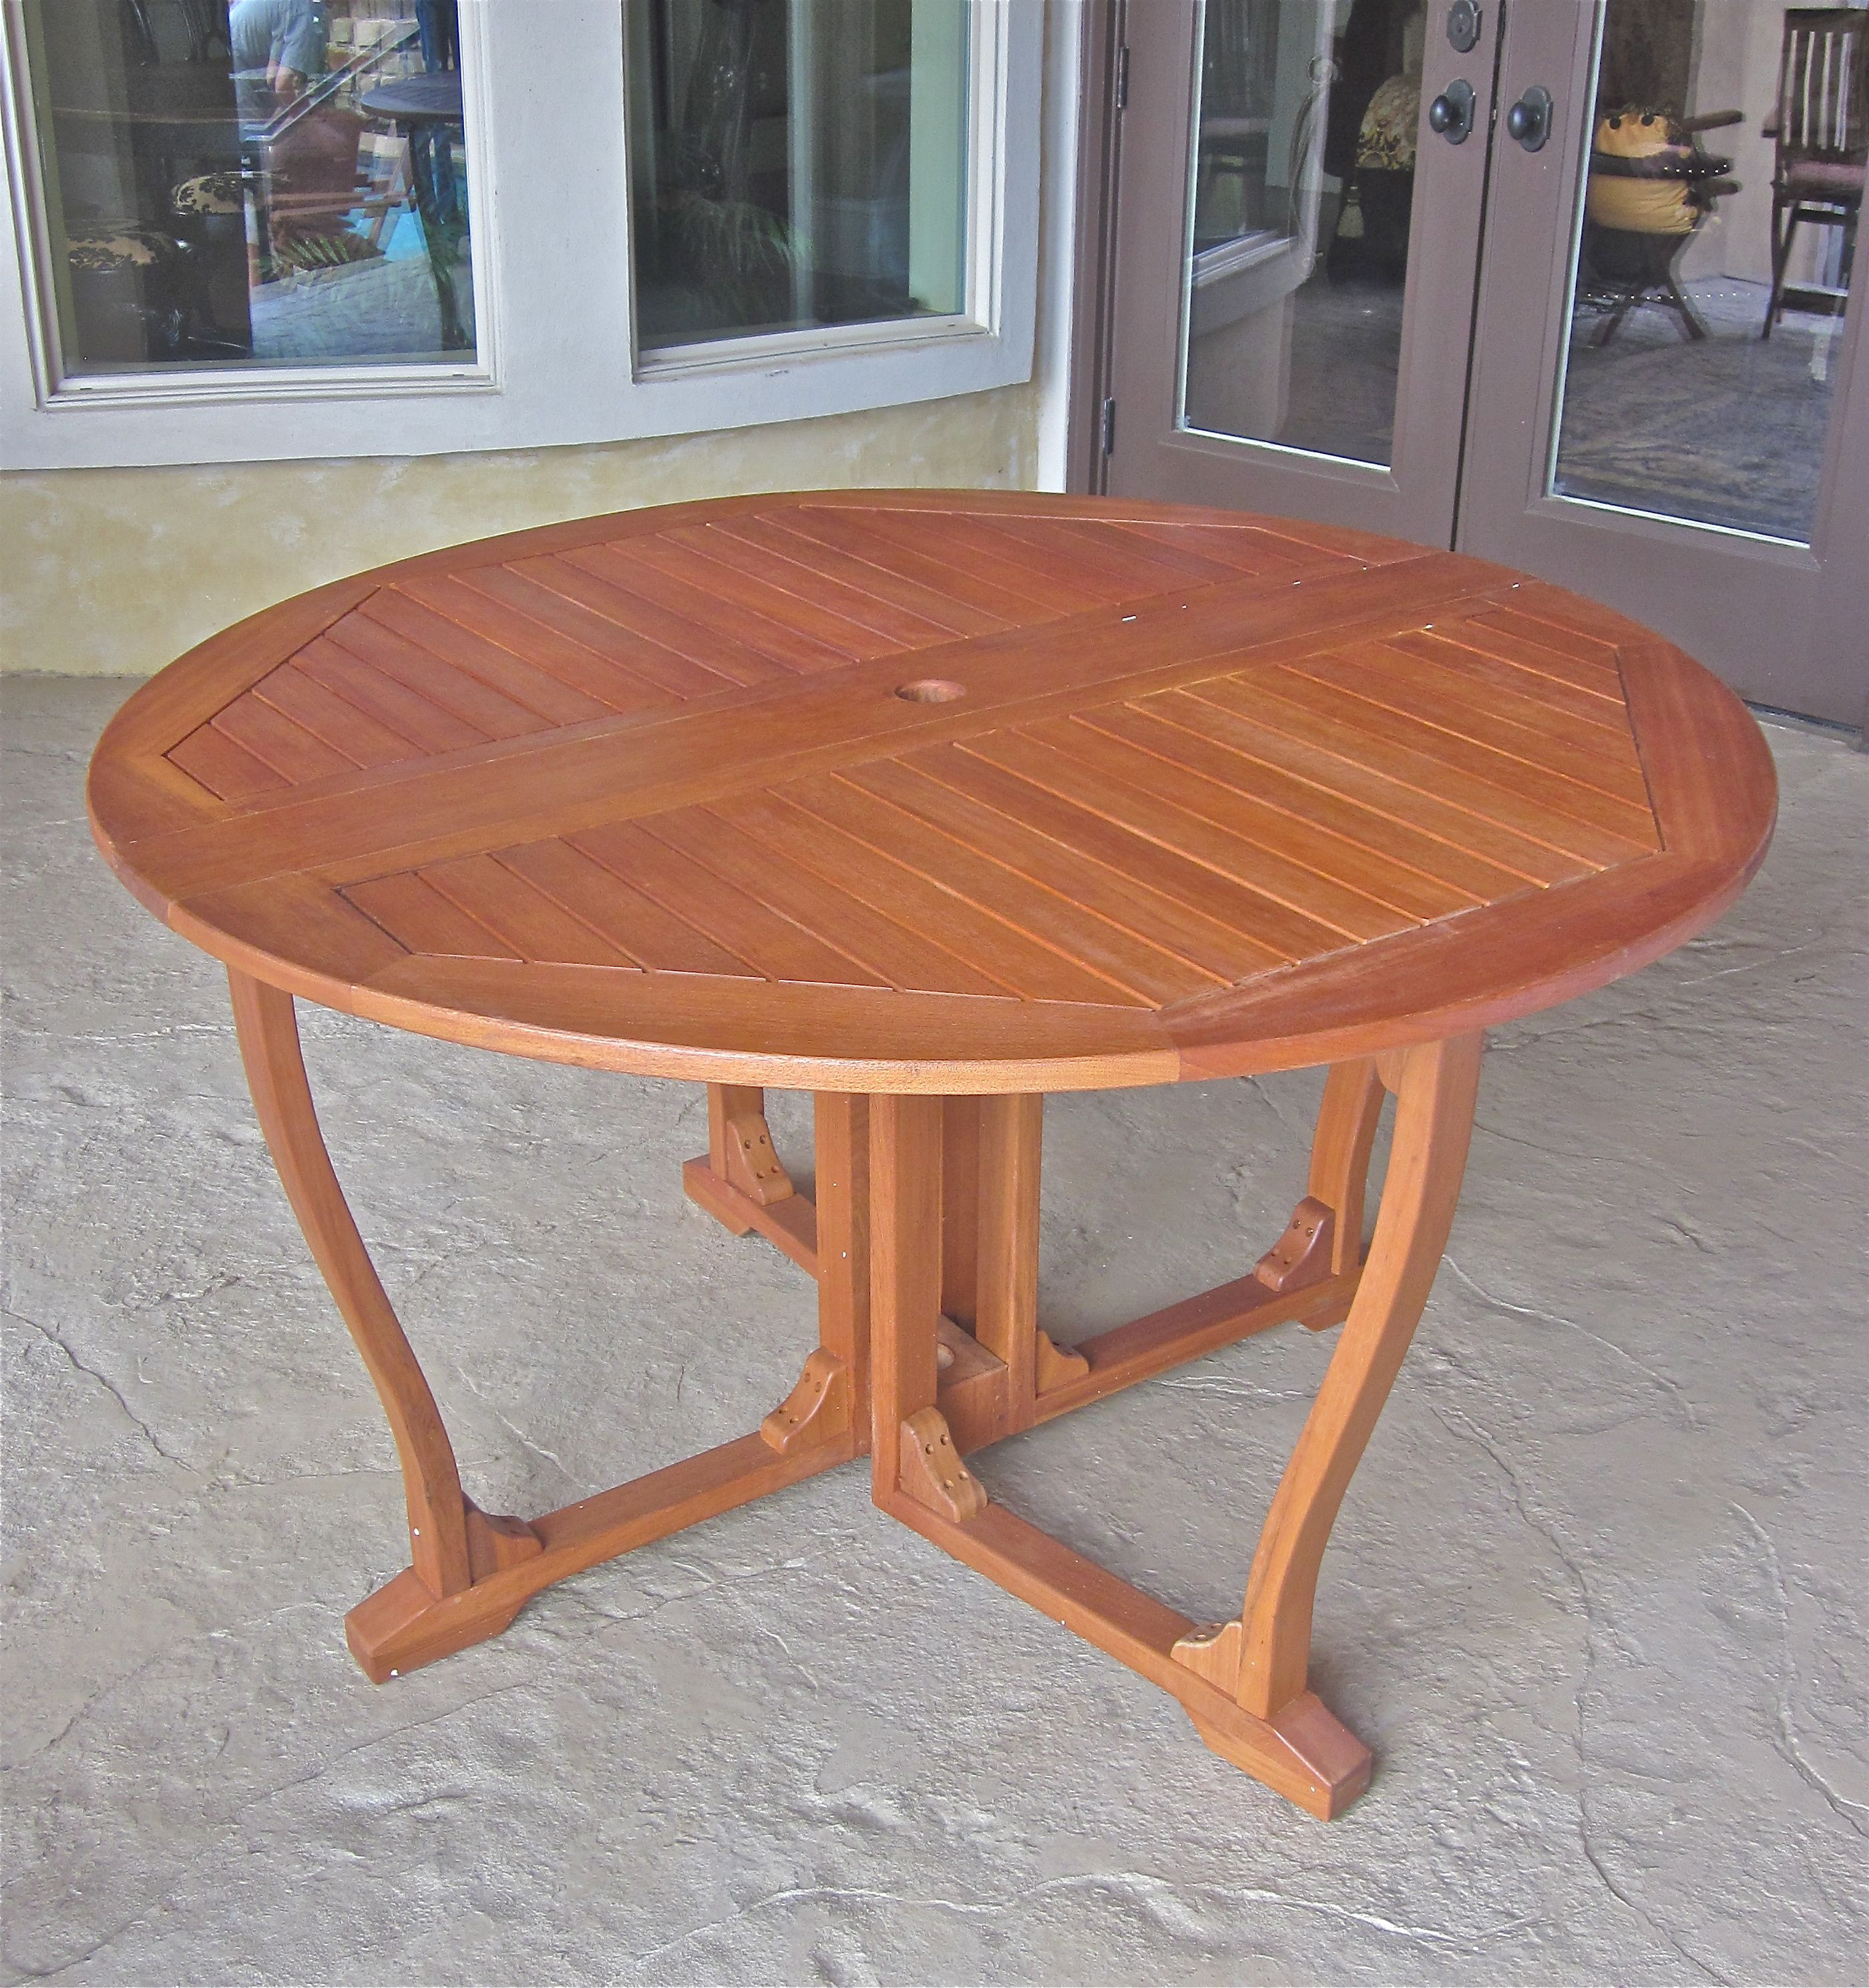 Royal tahiti round gate leg table by international caravan in patio dining tables - Round gateleg dining table ...